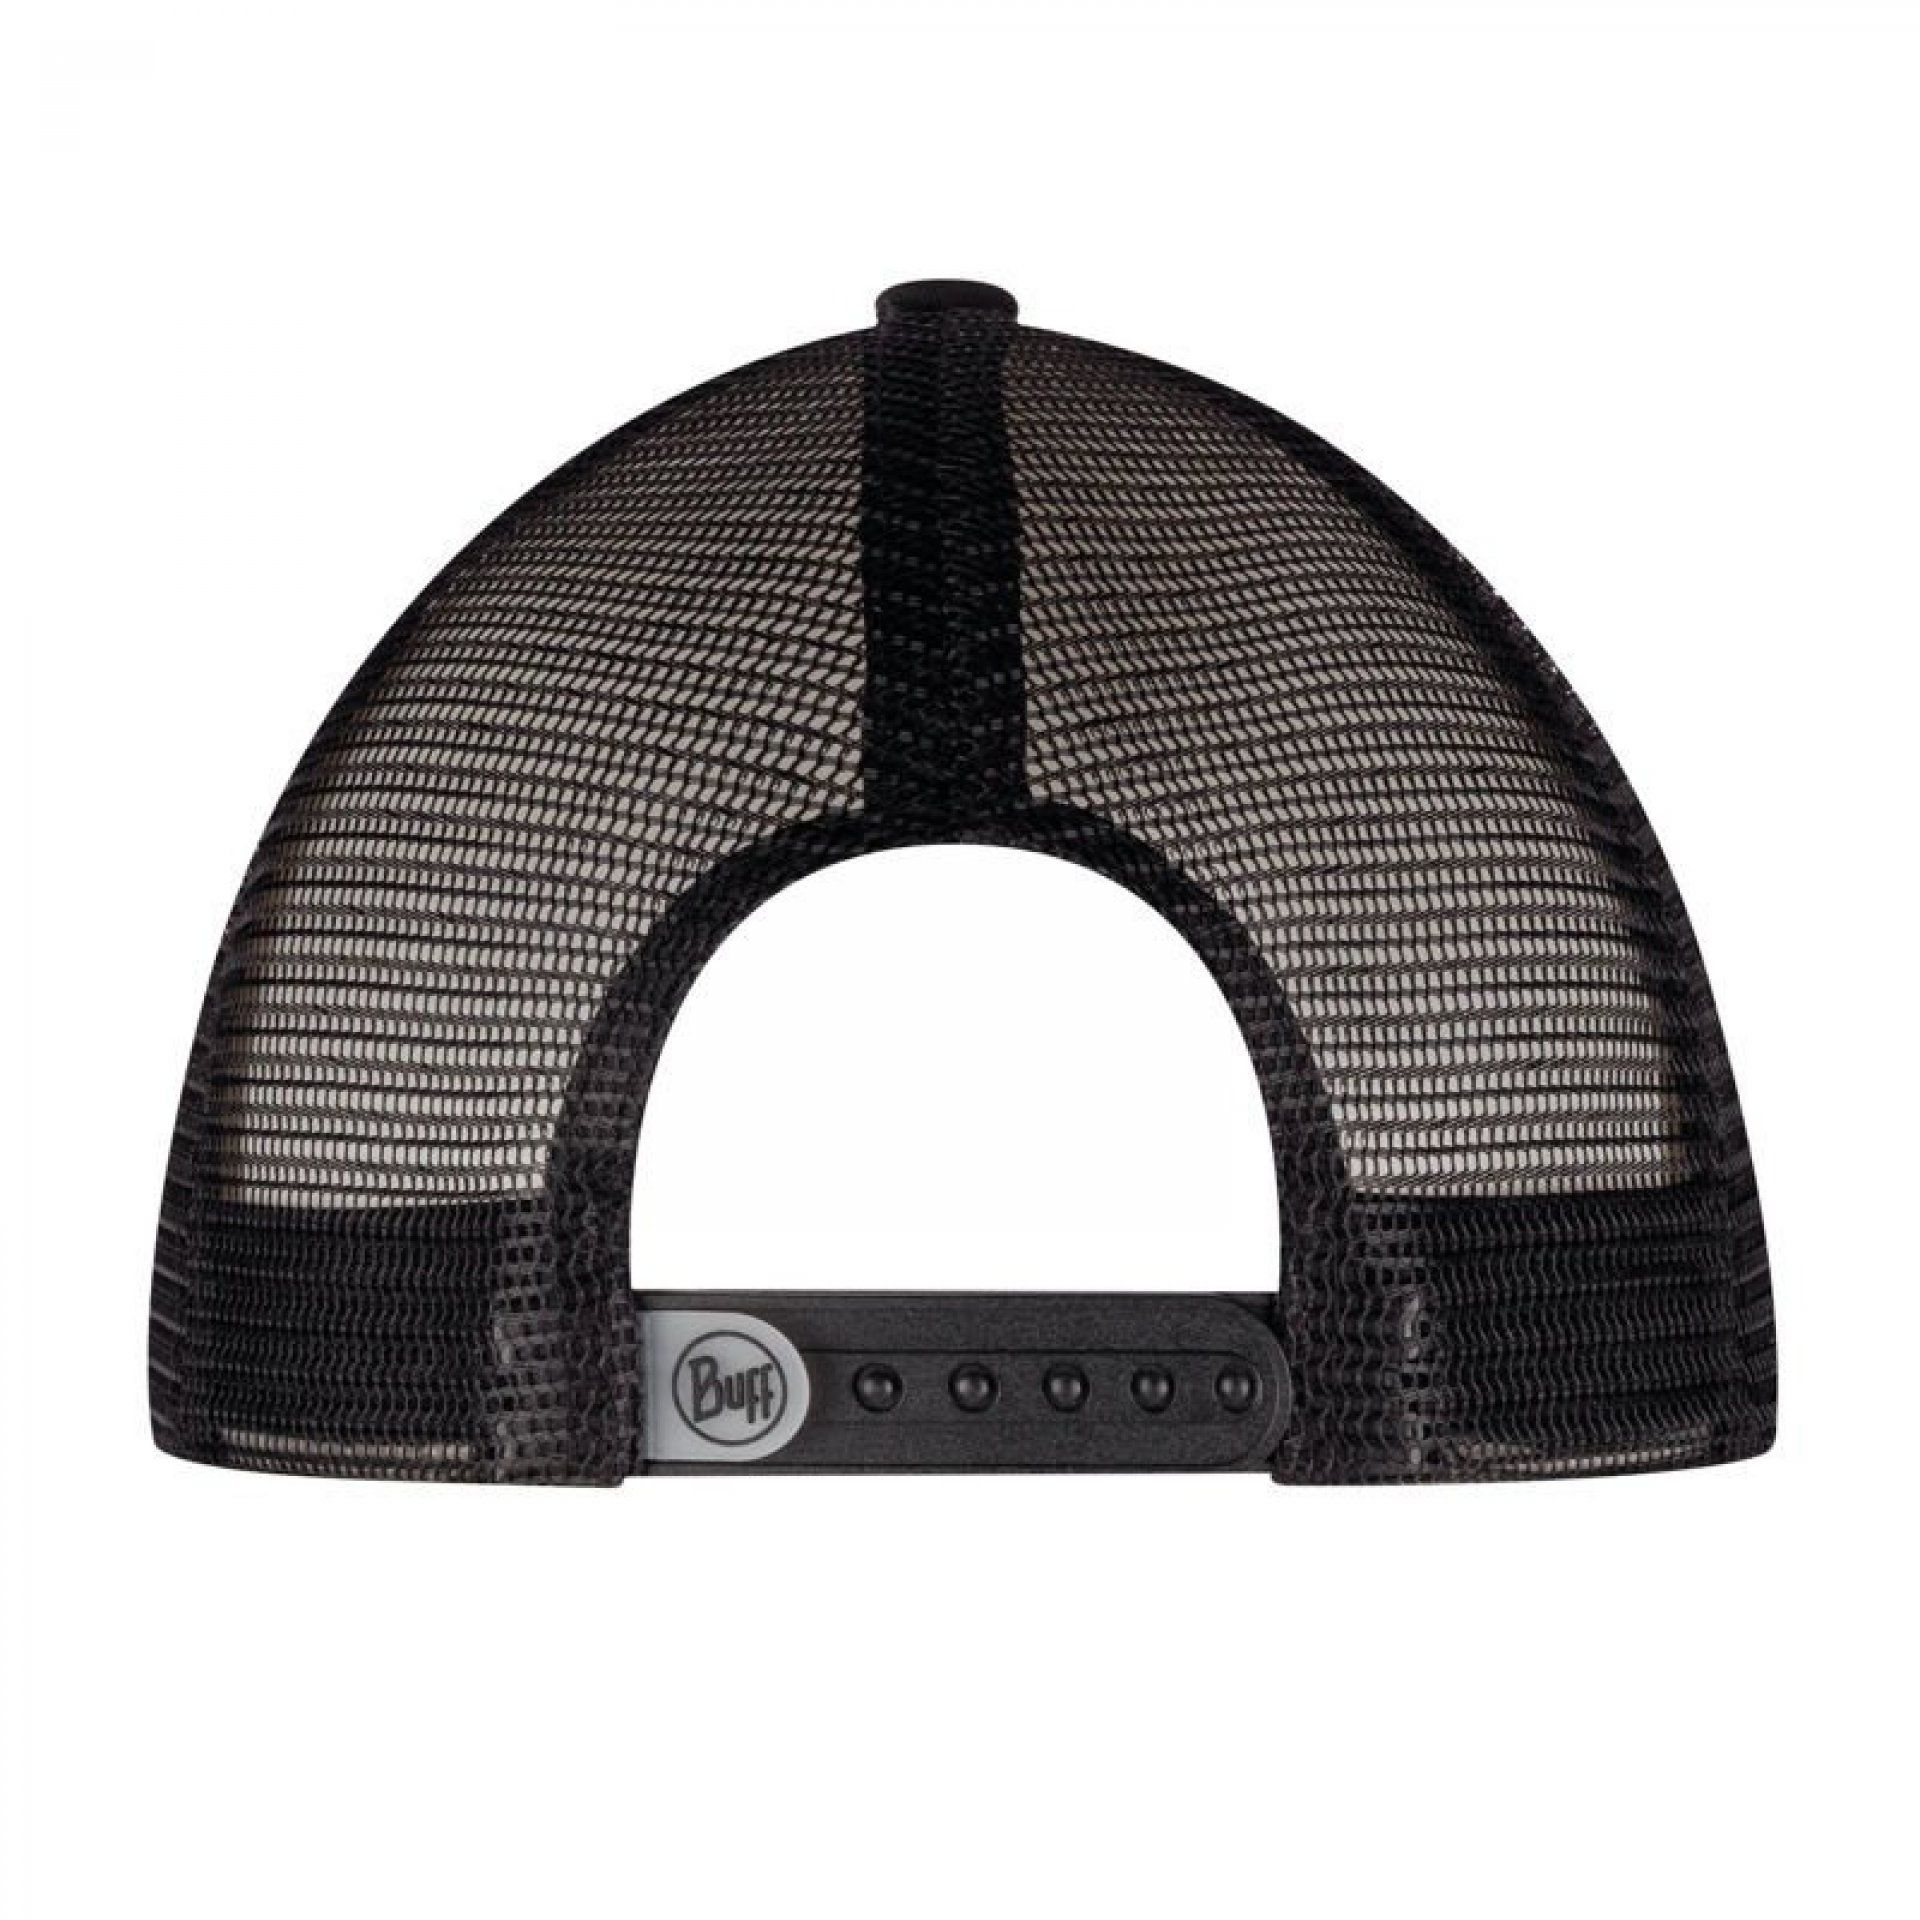 CZAPKA Z DASZKIEM BUFF TRUCKER CAP TABLE MOUNTAIN BLACK TYŁ